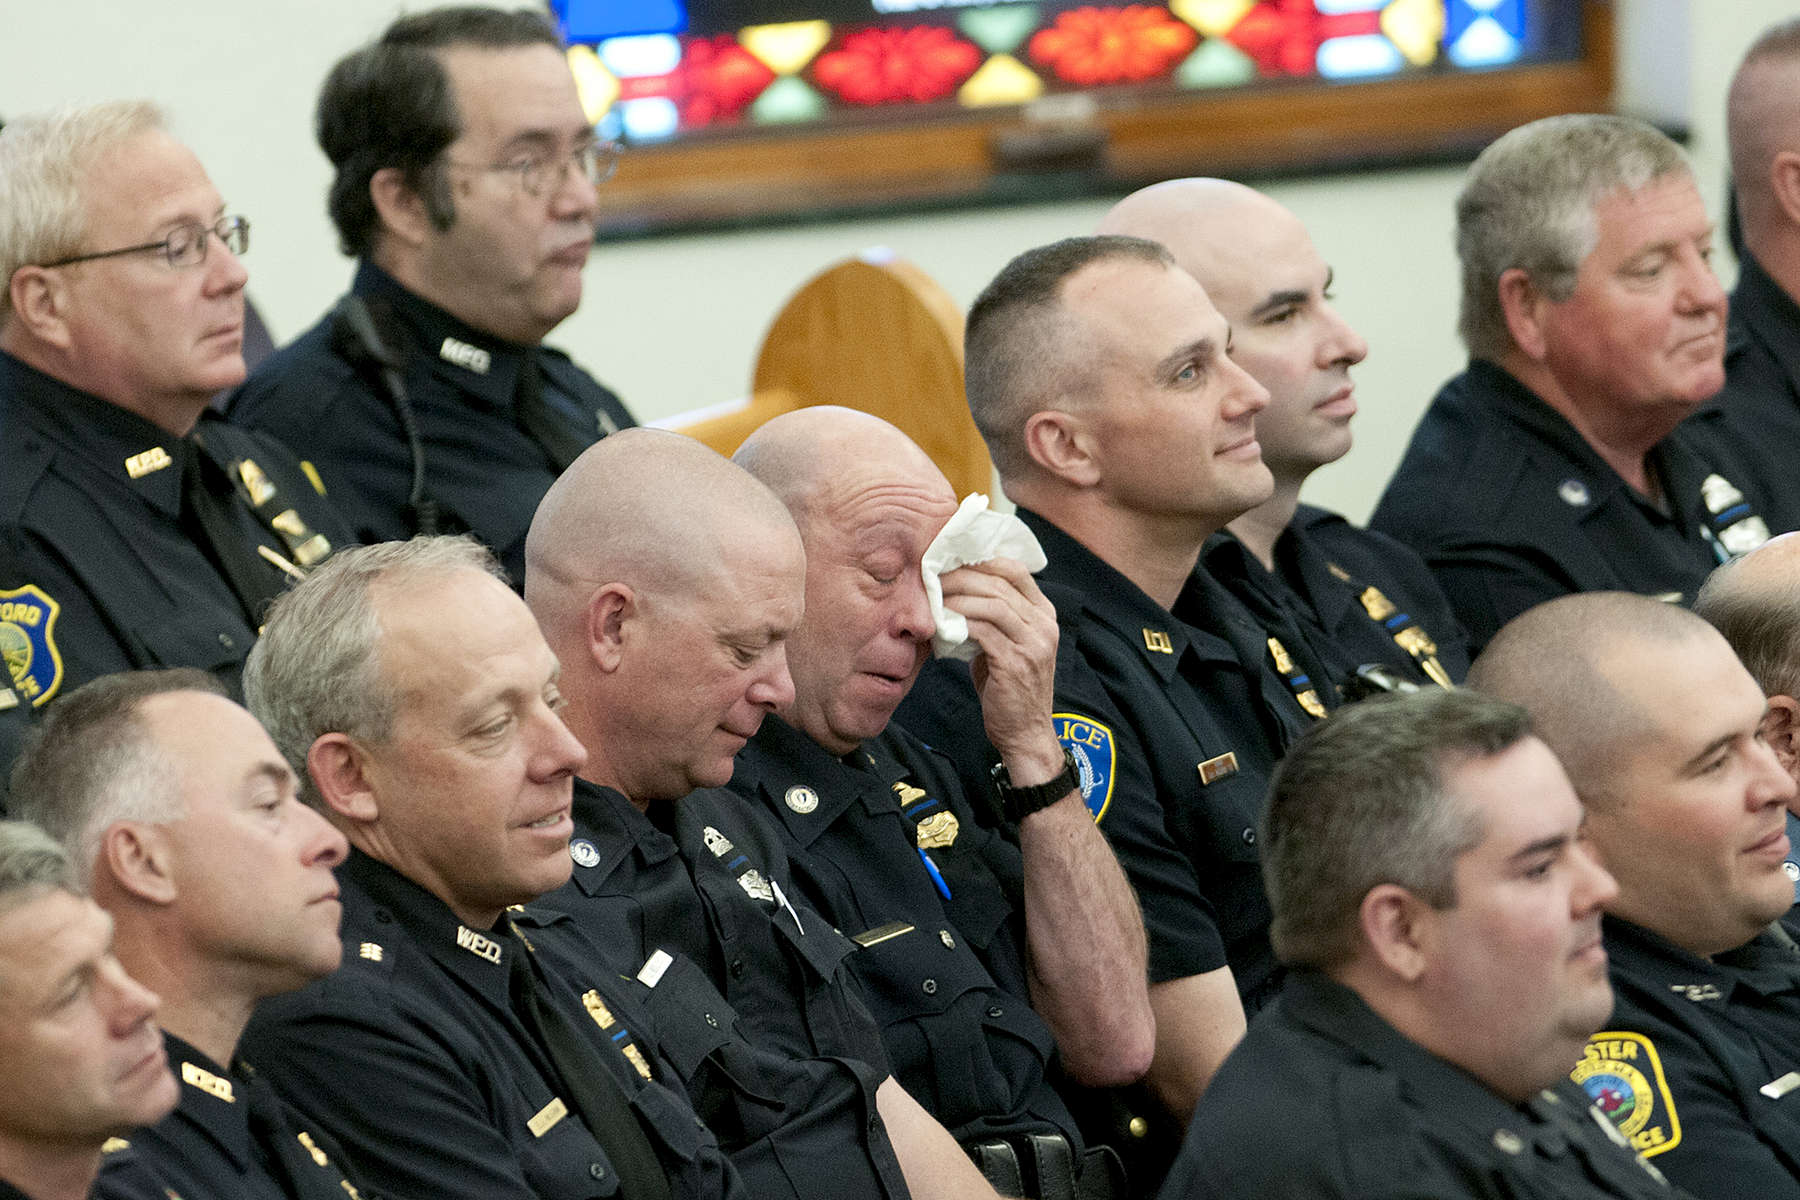 Police officers attend the funeral service for Auburn Police Officer Ronald Tarentino, Jr., 42, of Leicester, Mass. in St. Joseph's Church in Charlton on Friday, May 27, 2016. Officer Tarentino died after being shot during a traffic stop Sunday.